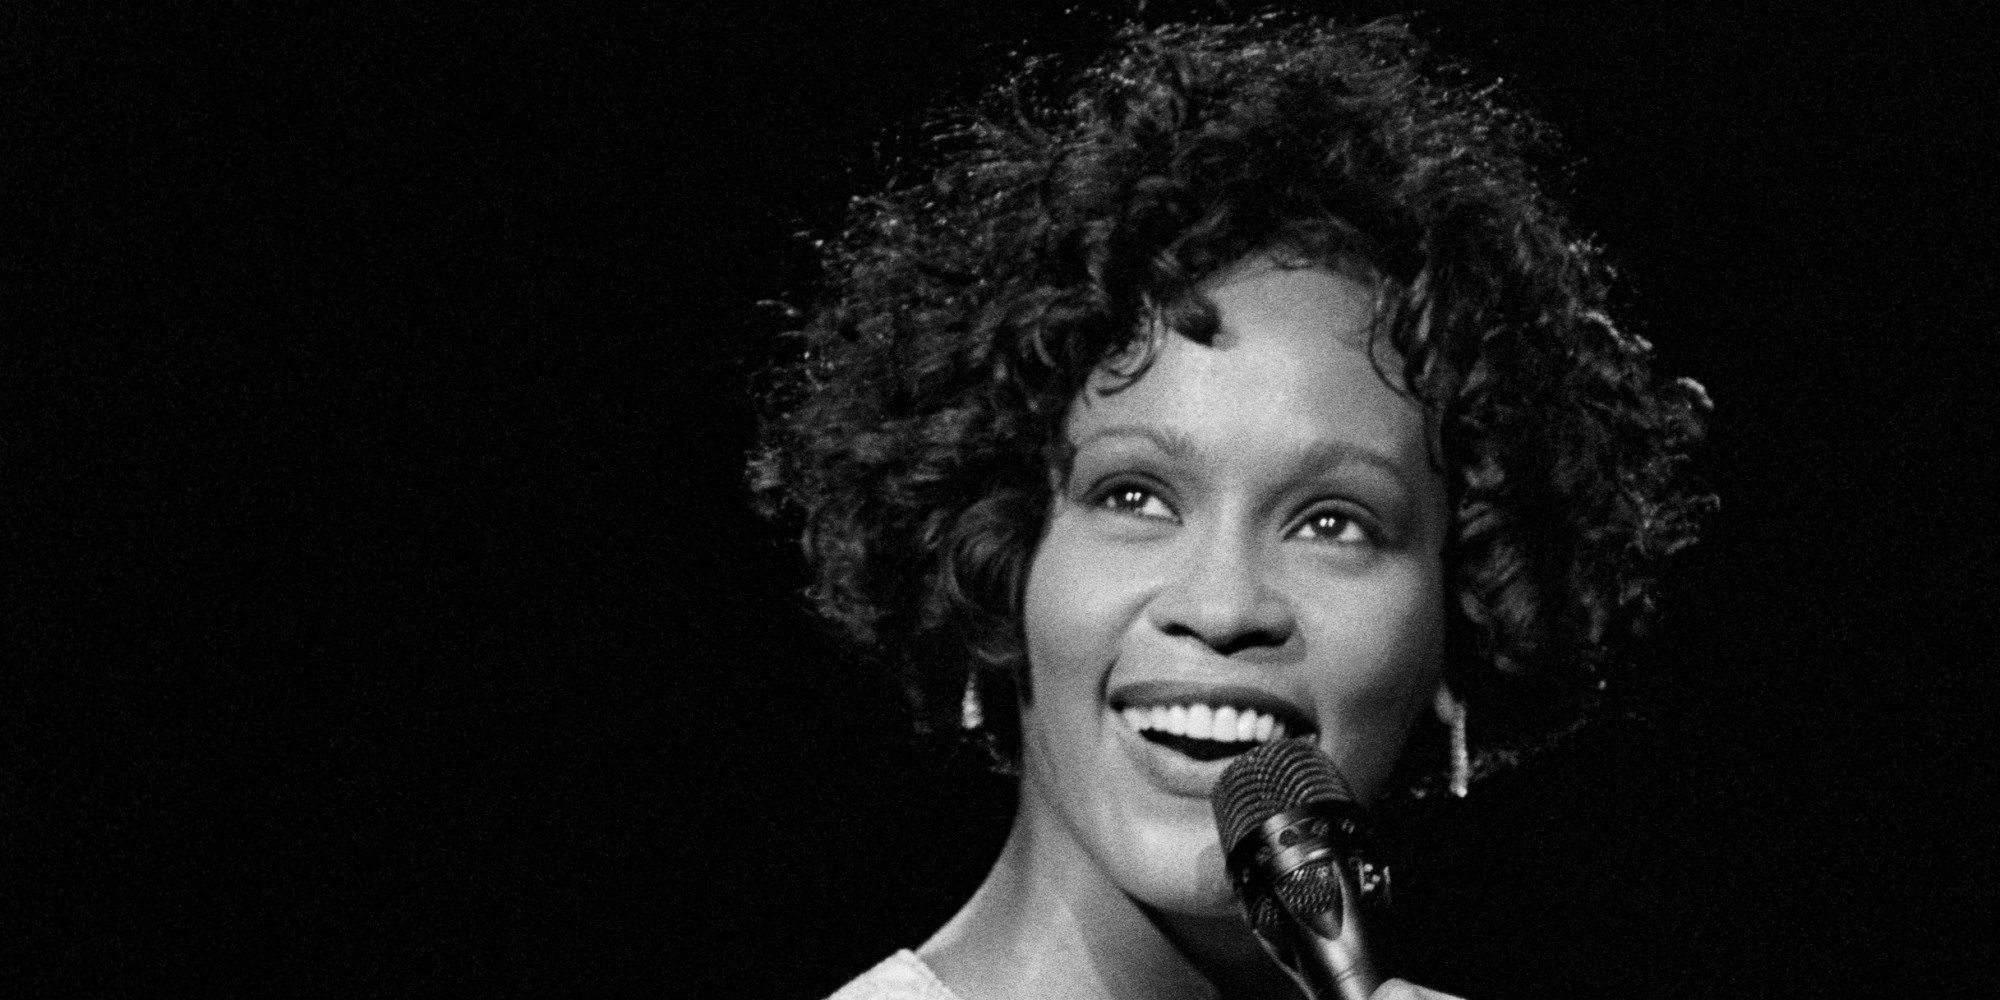 Whitney Houston performing at Radio City Music Hall in New York on July 20, 1993. (Photo by Ebet Roberts/Redferns)